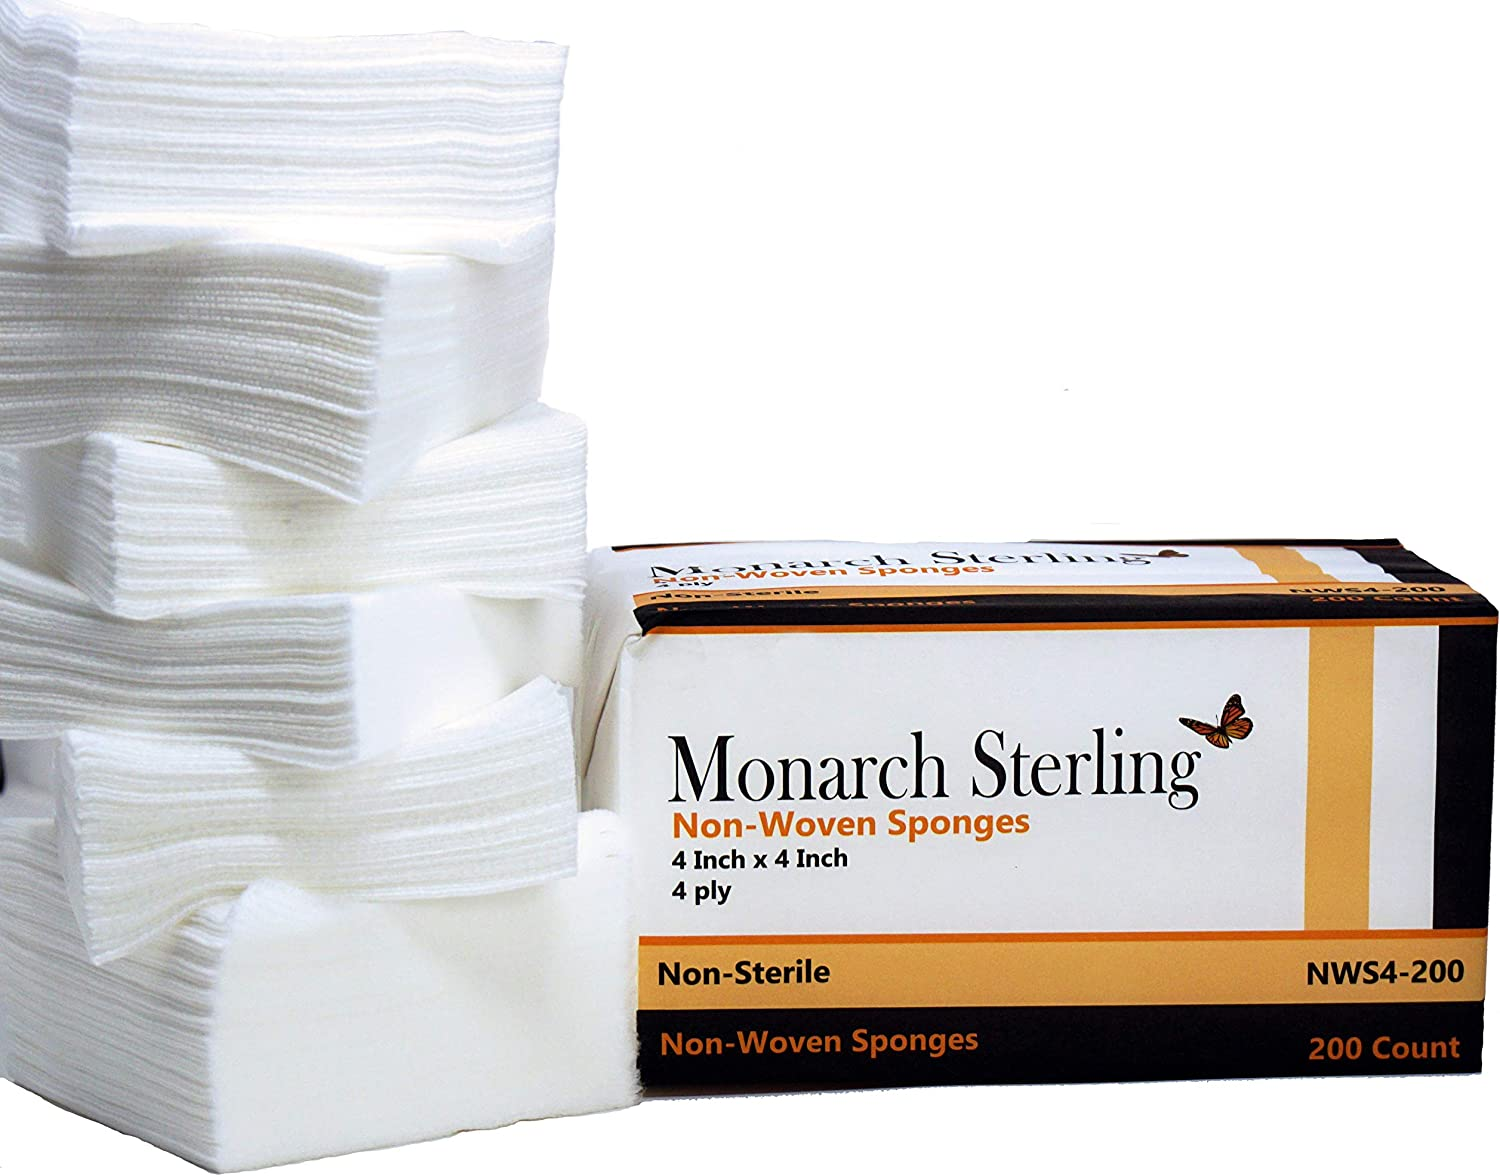 Monarch Sterling Non-Woven Gauze Sponges x Inch ply Reservation New products, world's highest quality popular! 4 N